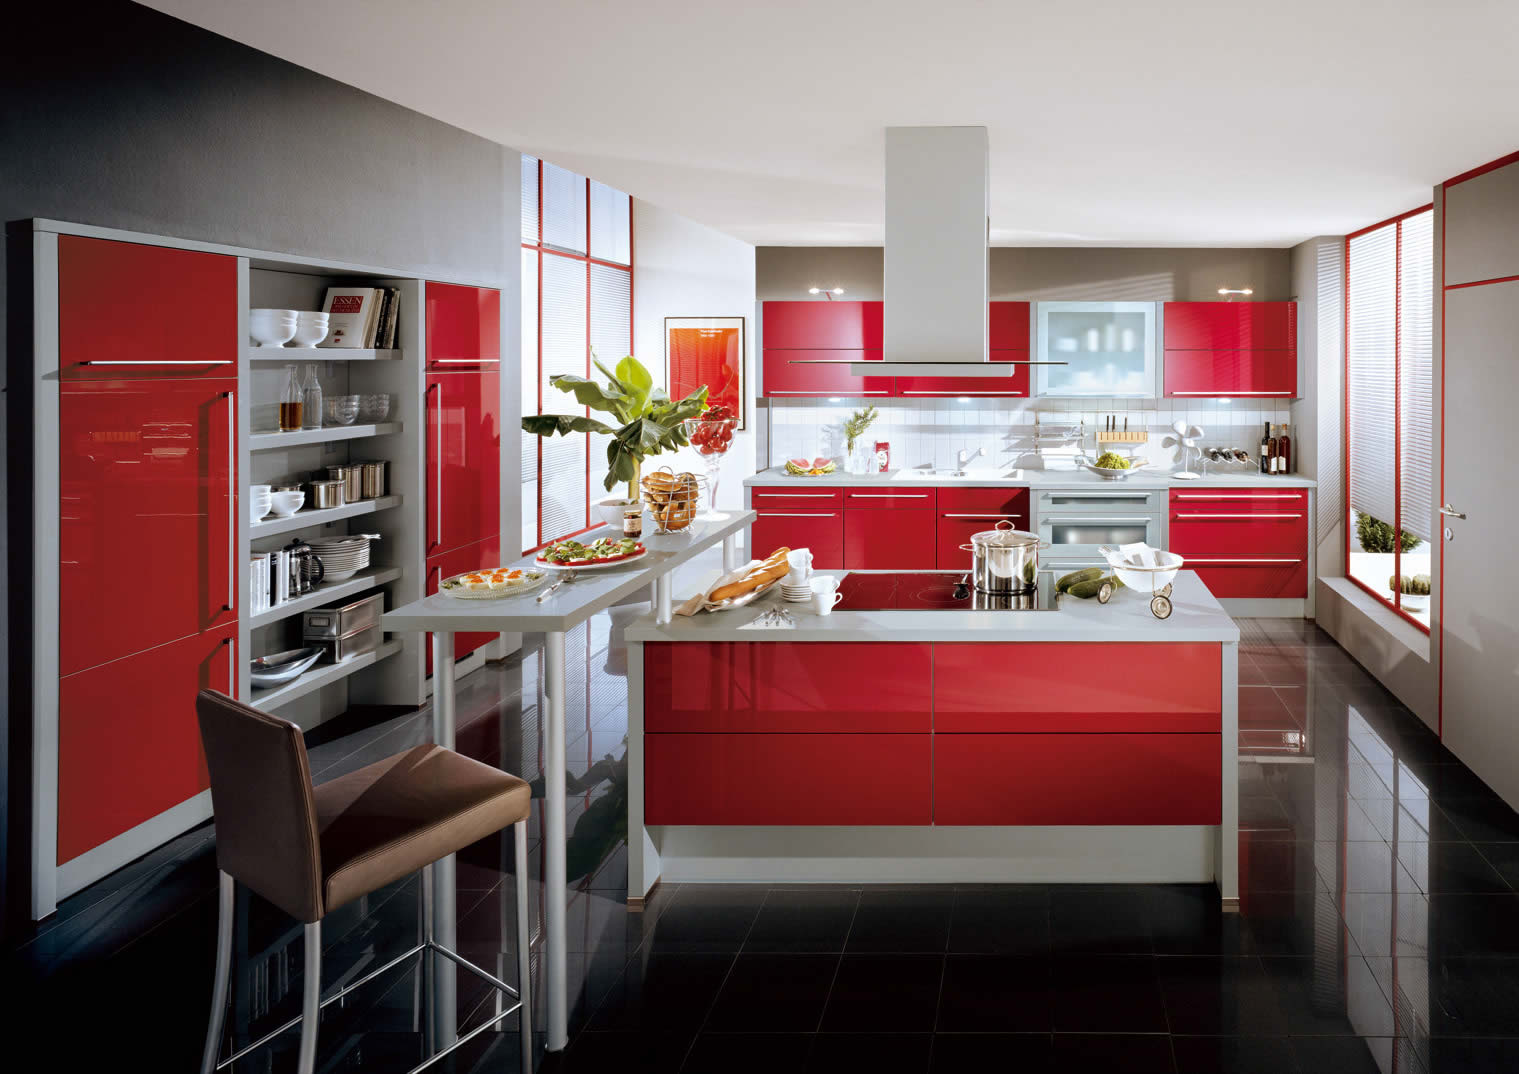 stunning-xeno-red-ultra-high-gloss-kitchen-cabinet-in-beautiful-kitchen-with-black-ceramic-tiles-flooring-and-grey-kitchen-bar-wonderful-high-gloss-kitchen-cabinet-ideas-of-contempor